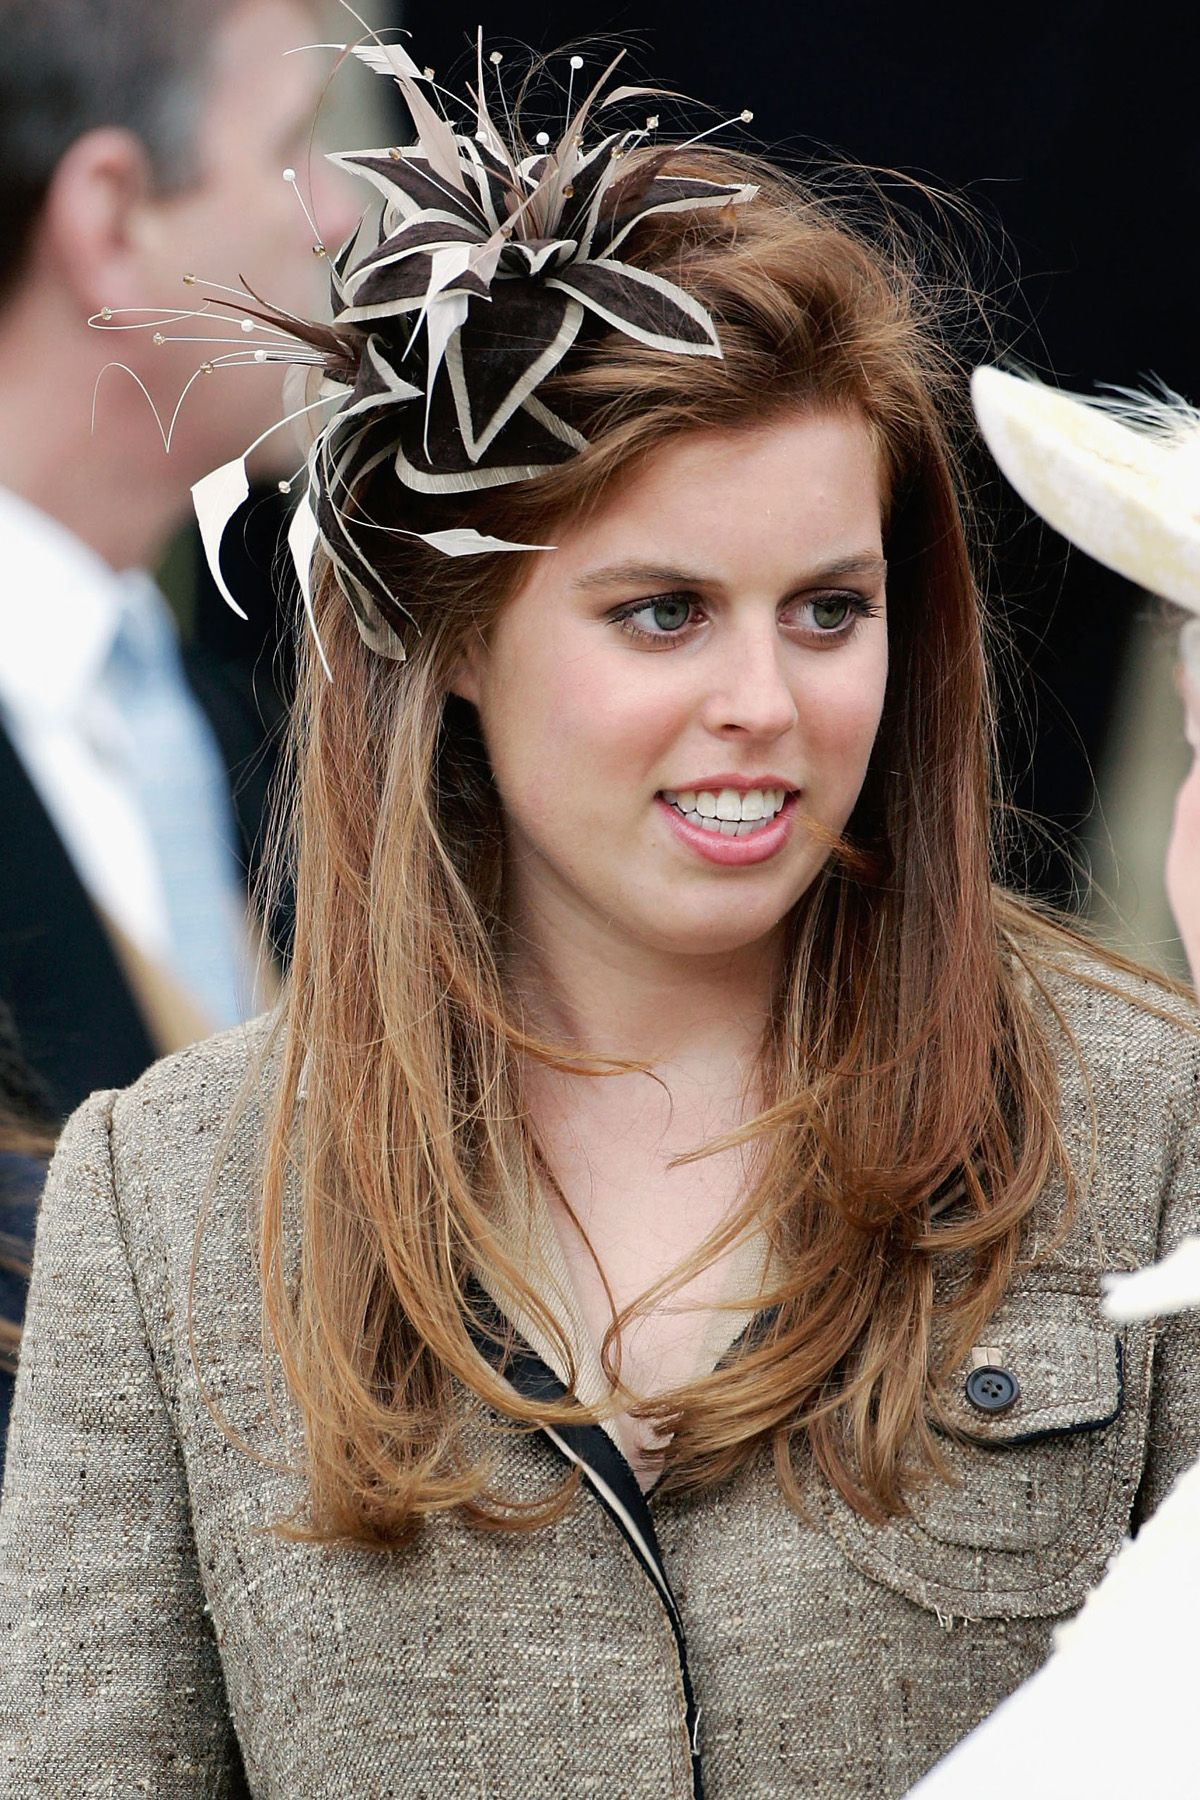 676eccf23b3c97 The Craziest Royal Wedding Hats of All Time